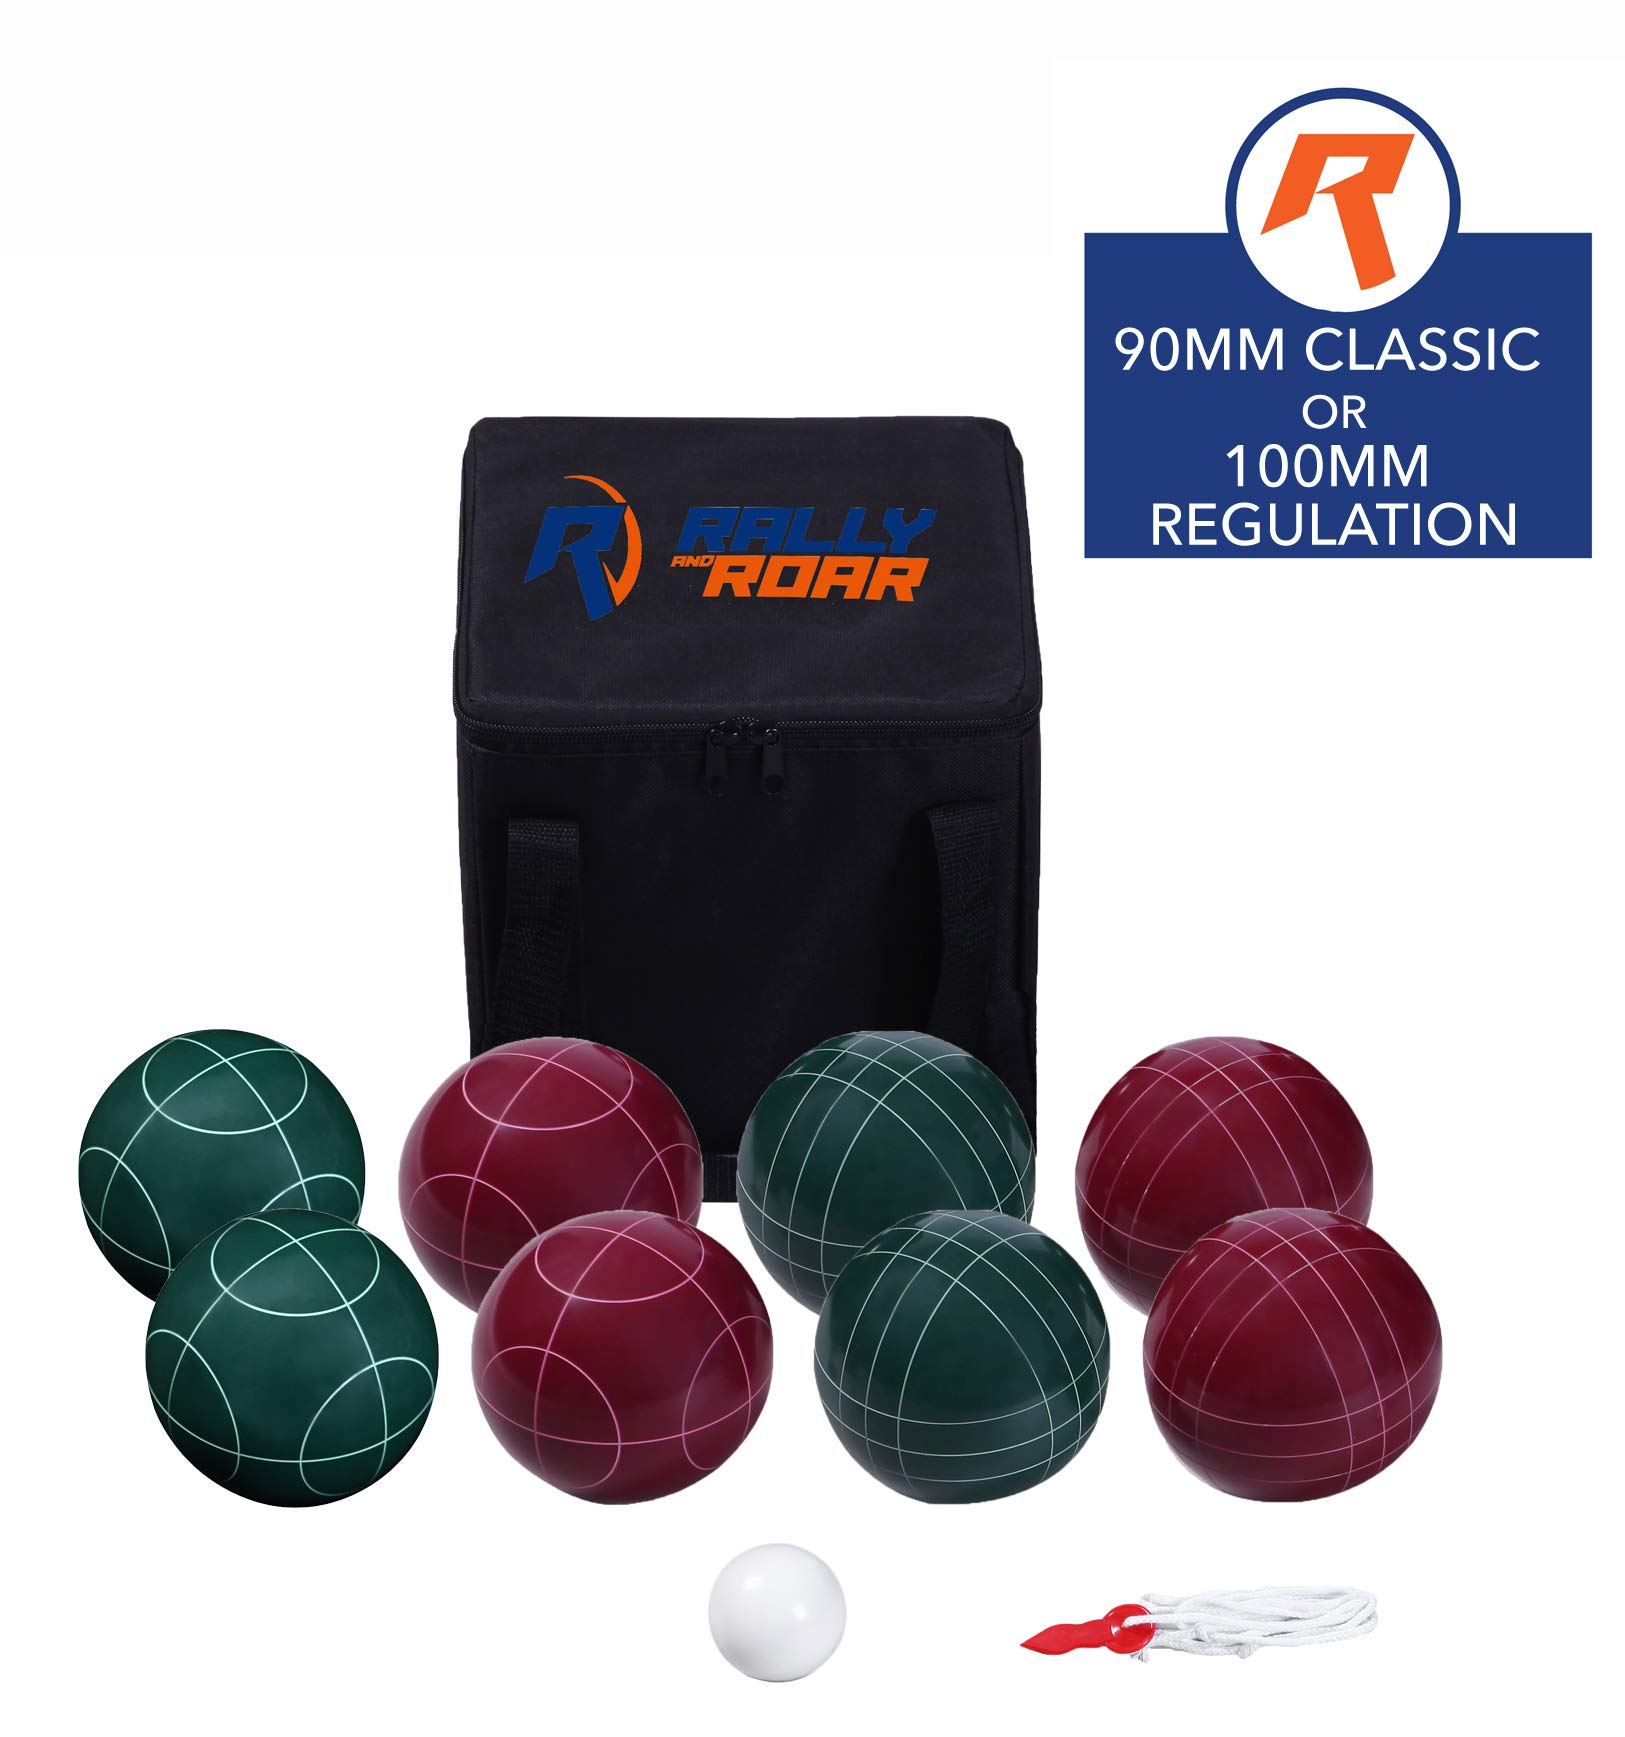 Bocce Ball Game Set for Adults, Families - 90 mm - Complete Bocce Yard and Lawn Games with Carrying and Storage Case by Rally and Roar - Fun Outdoor, Backyard, Family, Beach Game by Rally and Roar